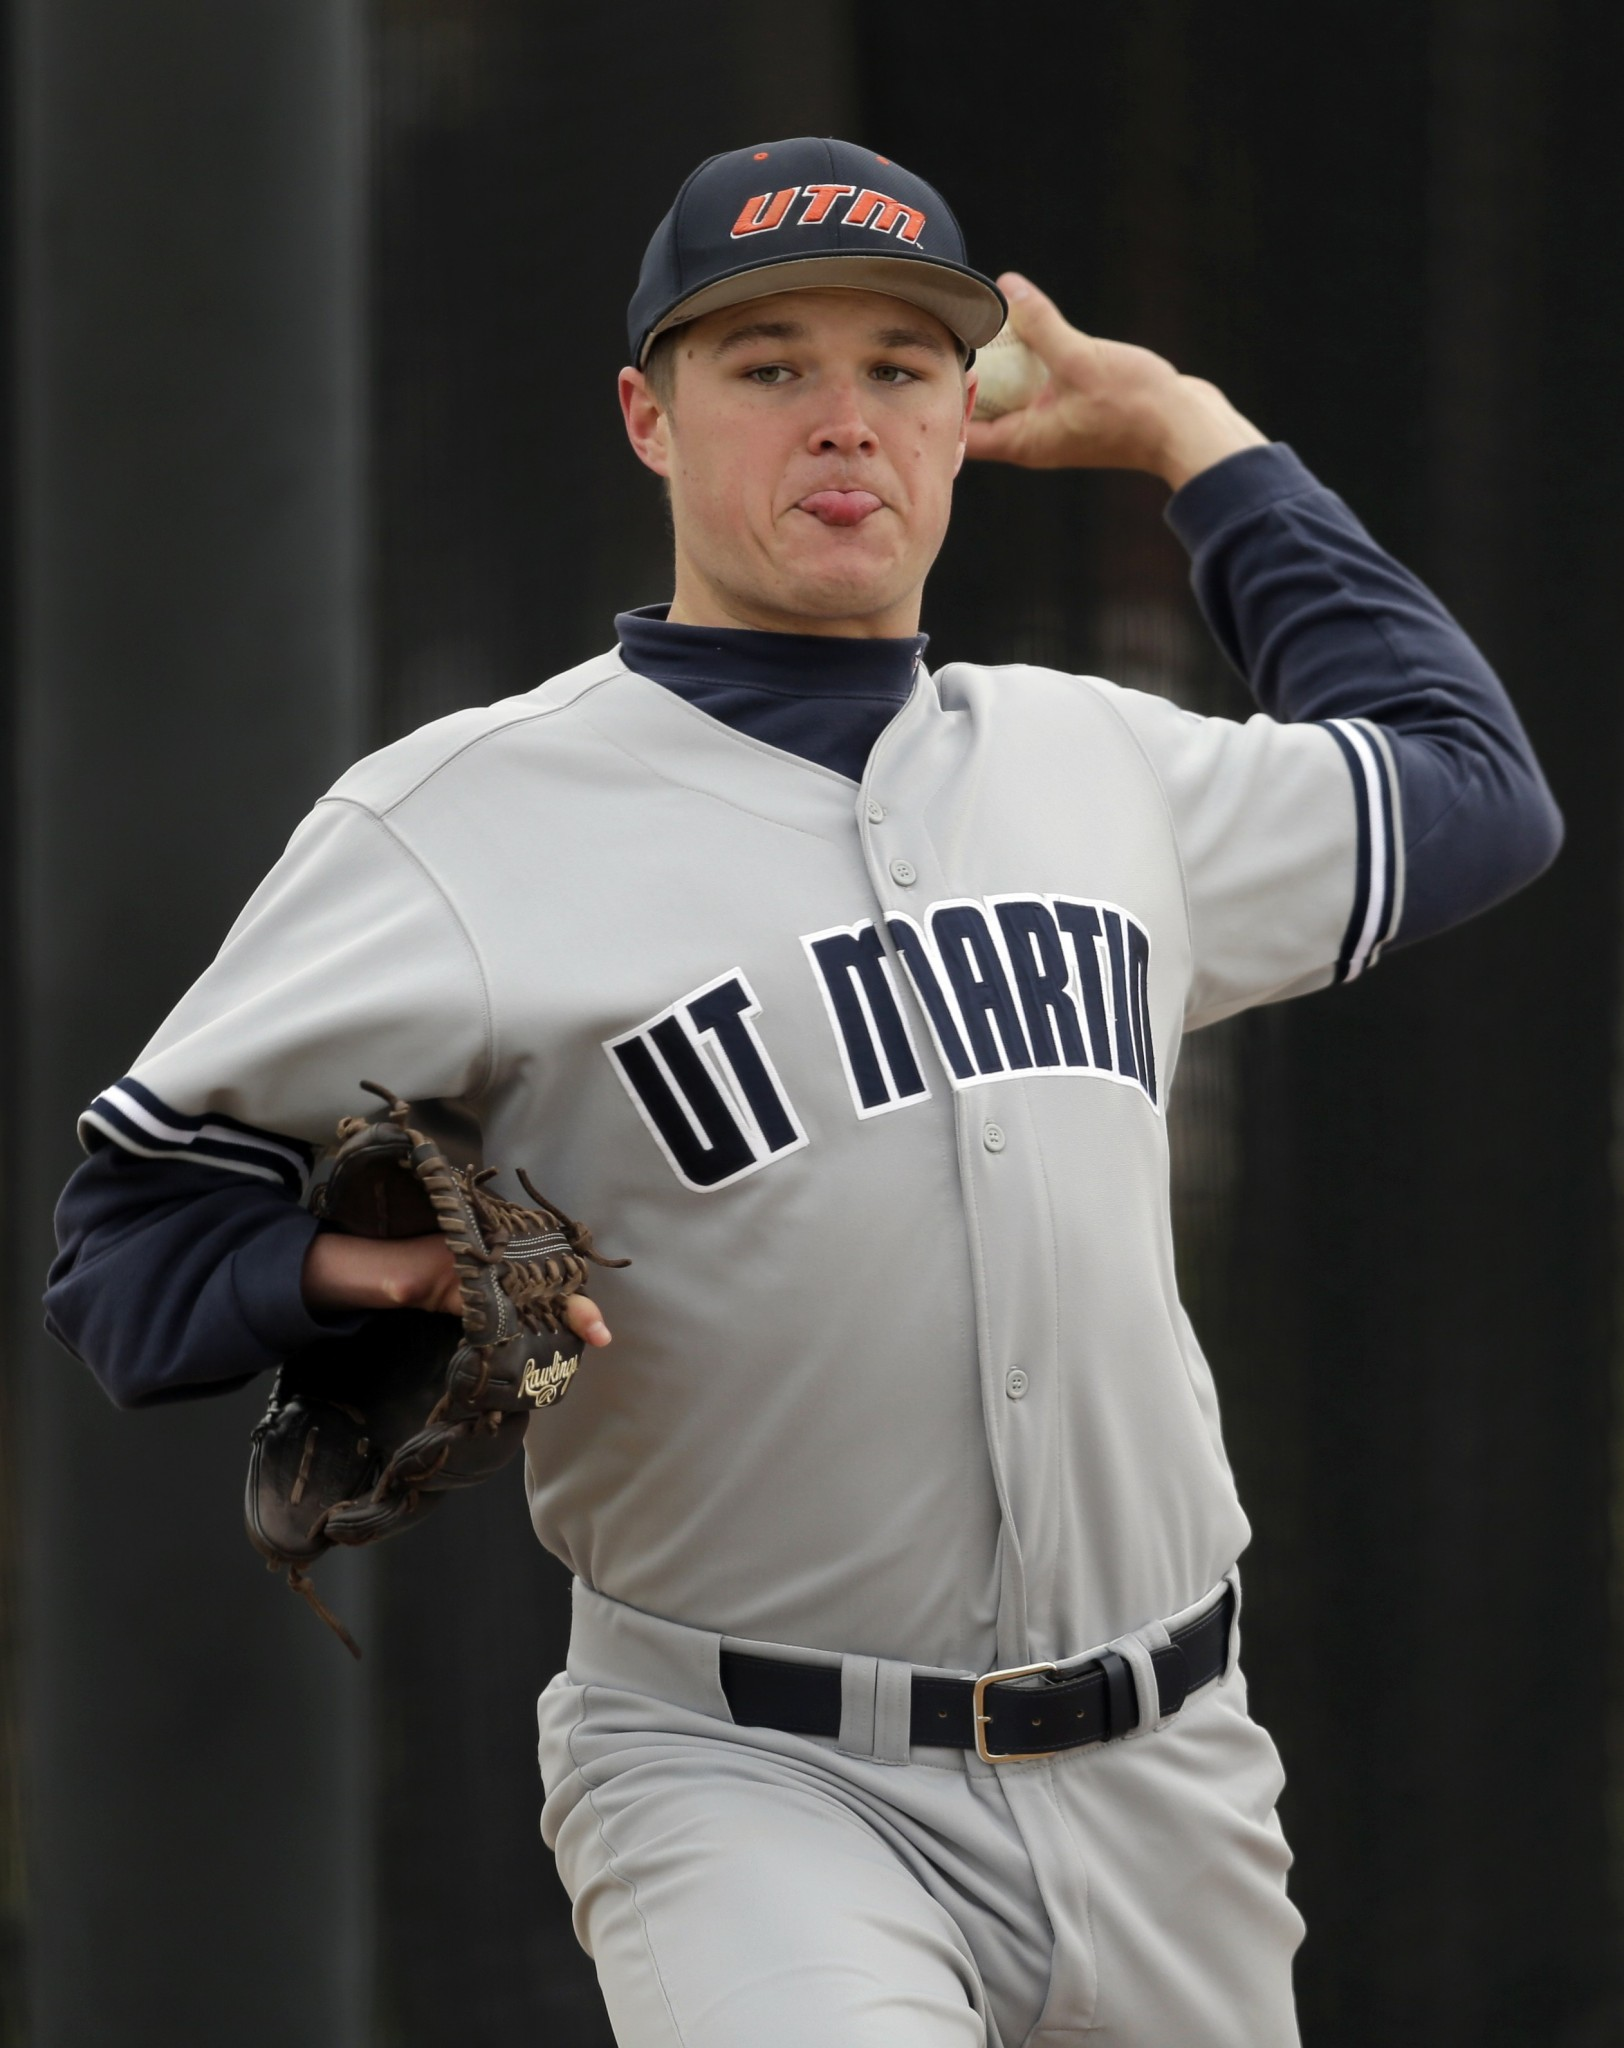 Pitcher manco se luce en Tennessee-Martin | Mixed Voces